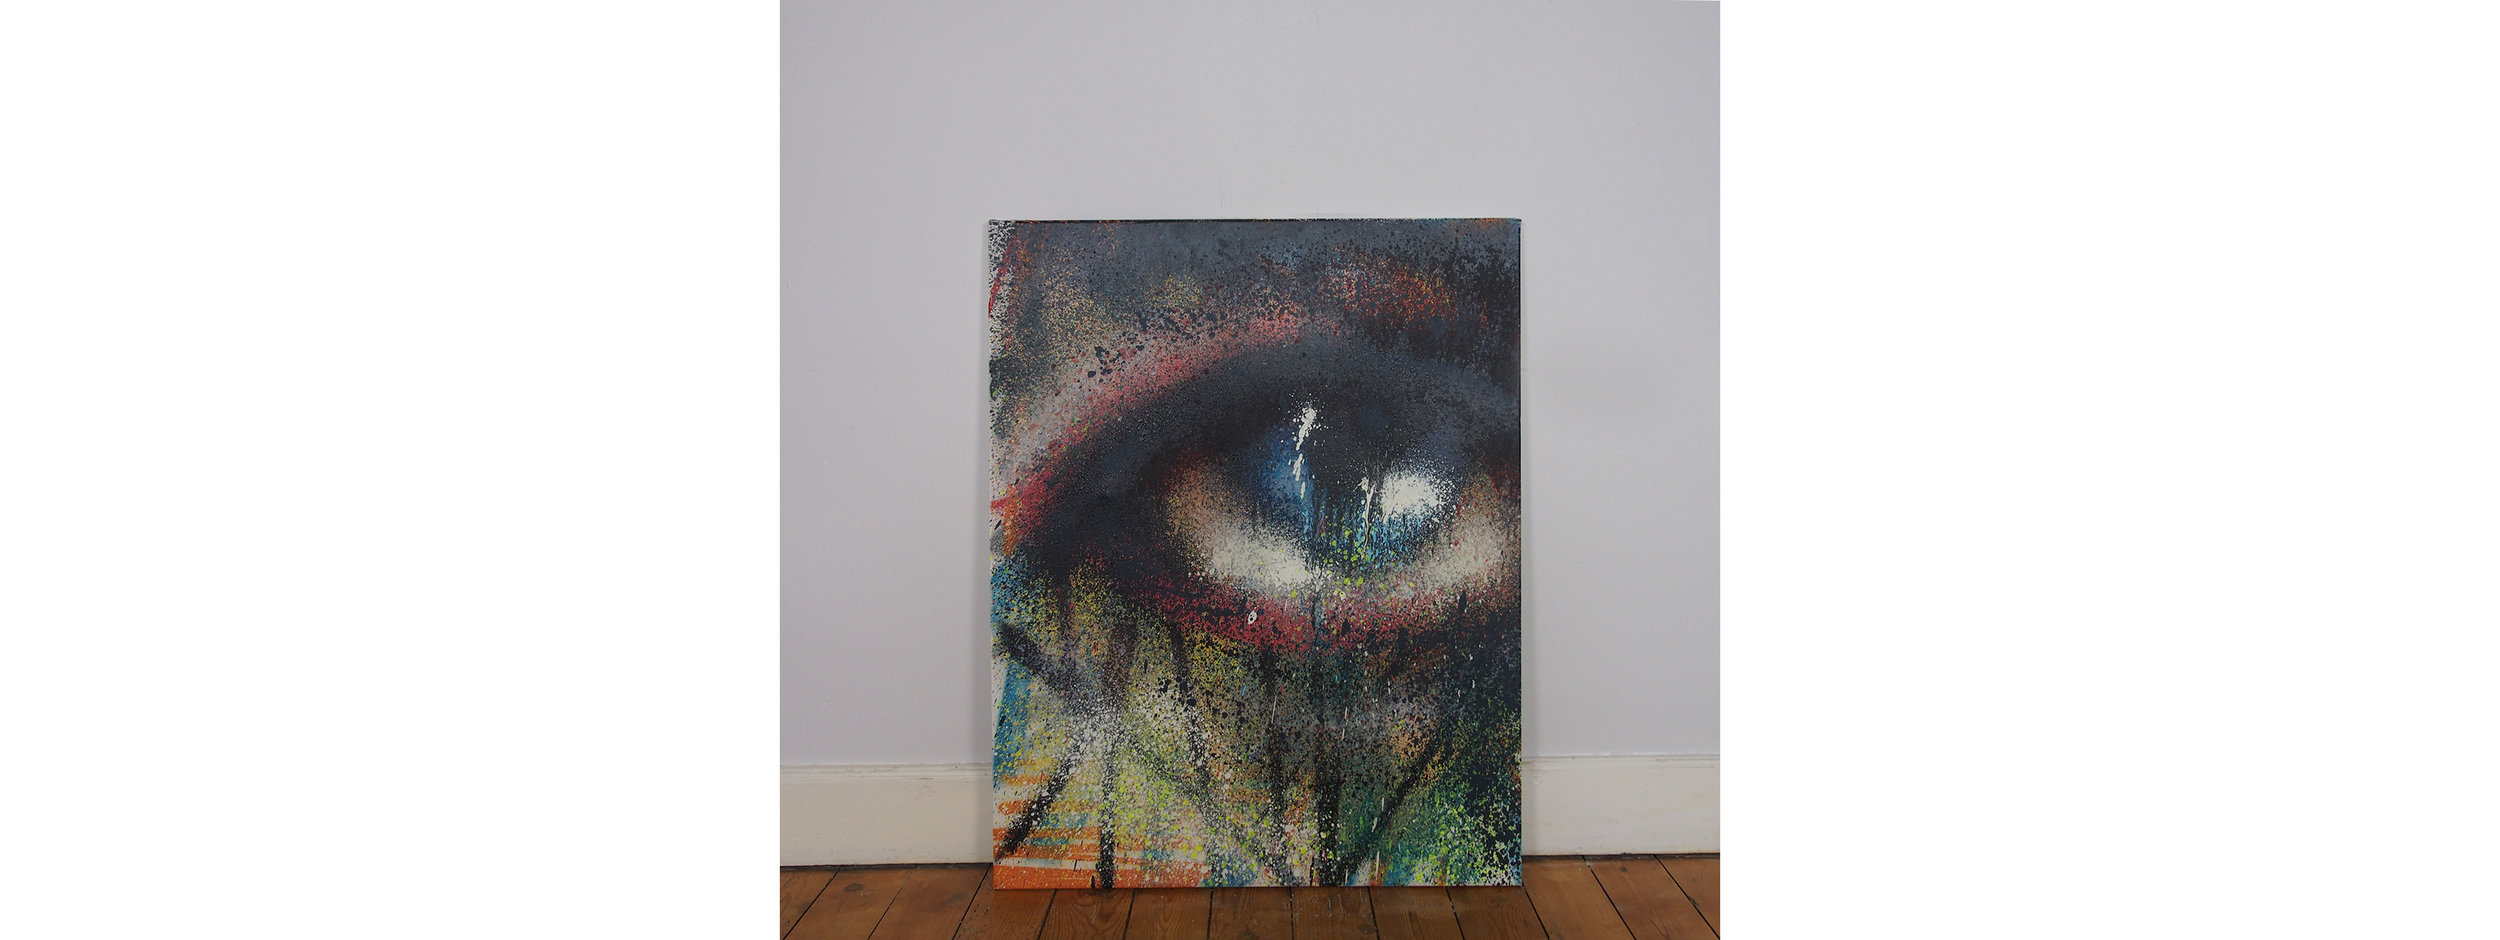 Eye for an eye - 300€